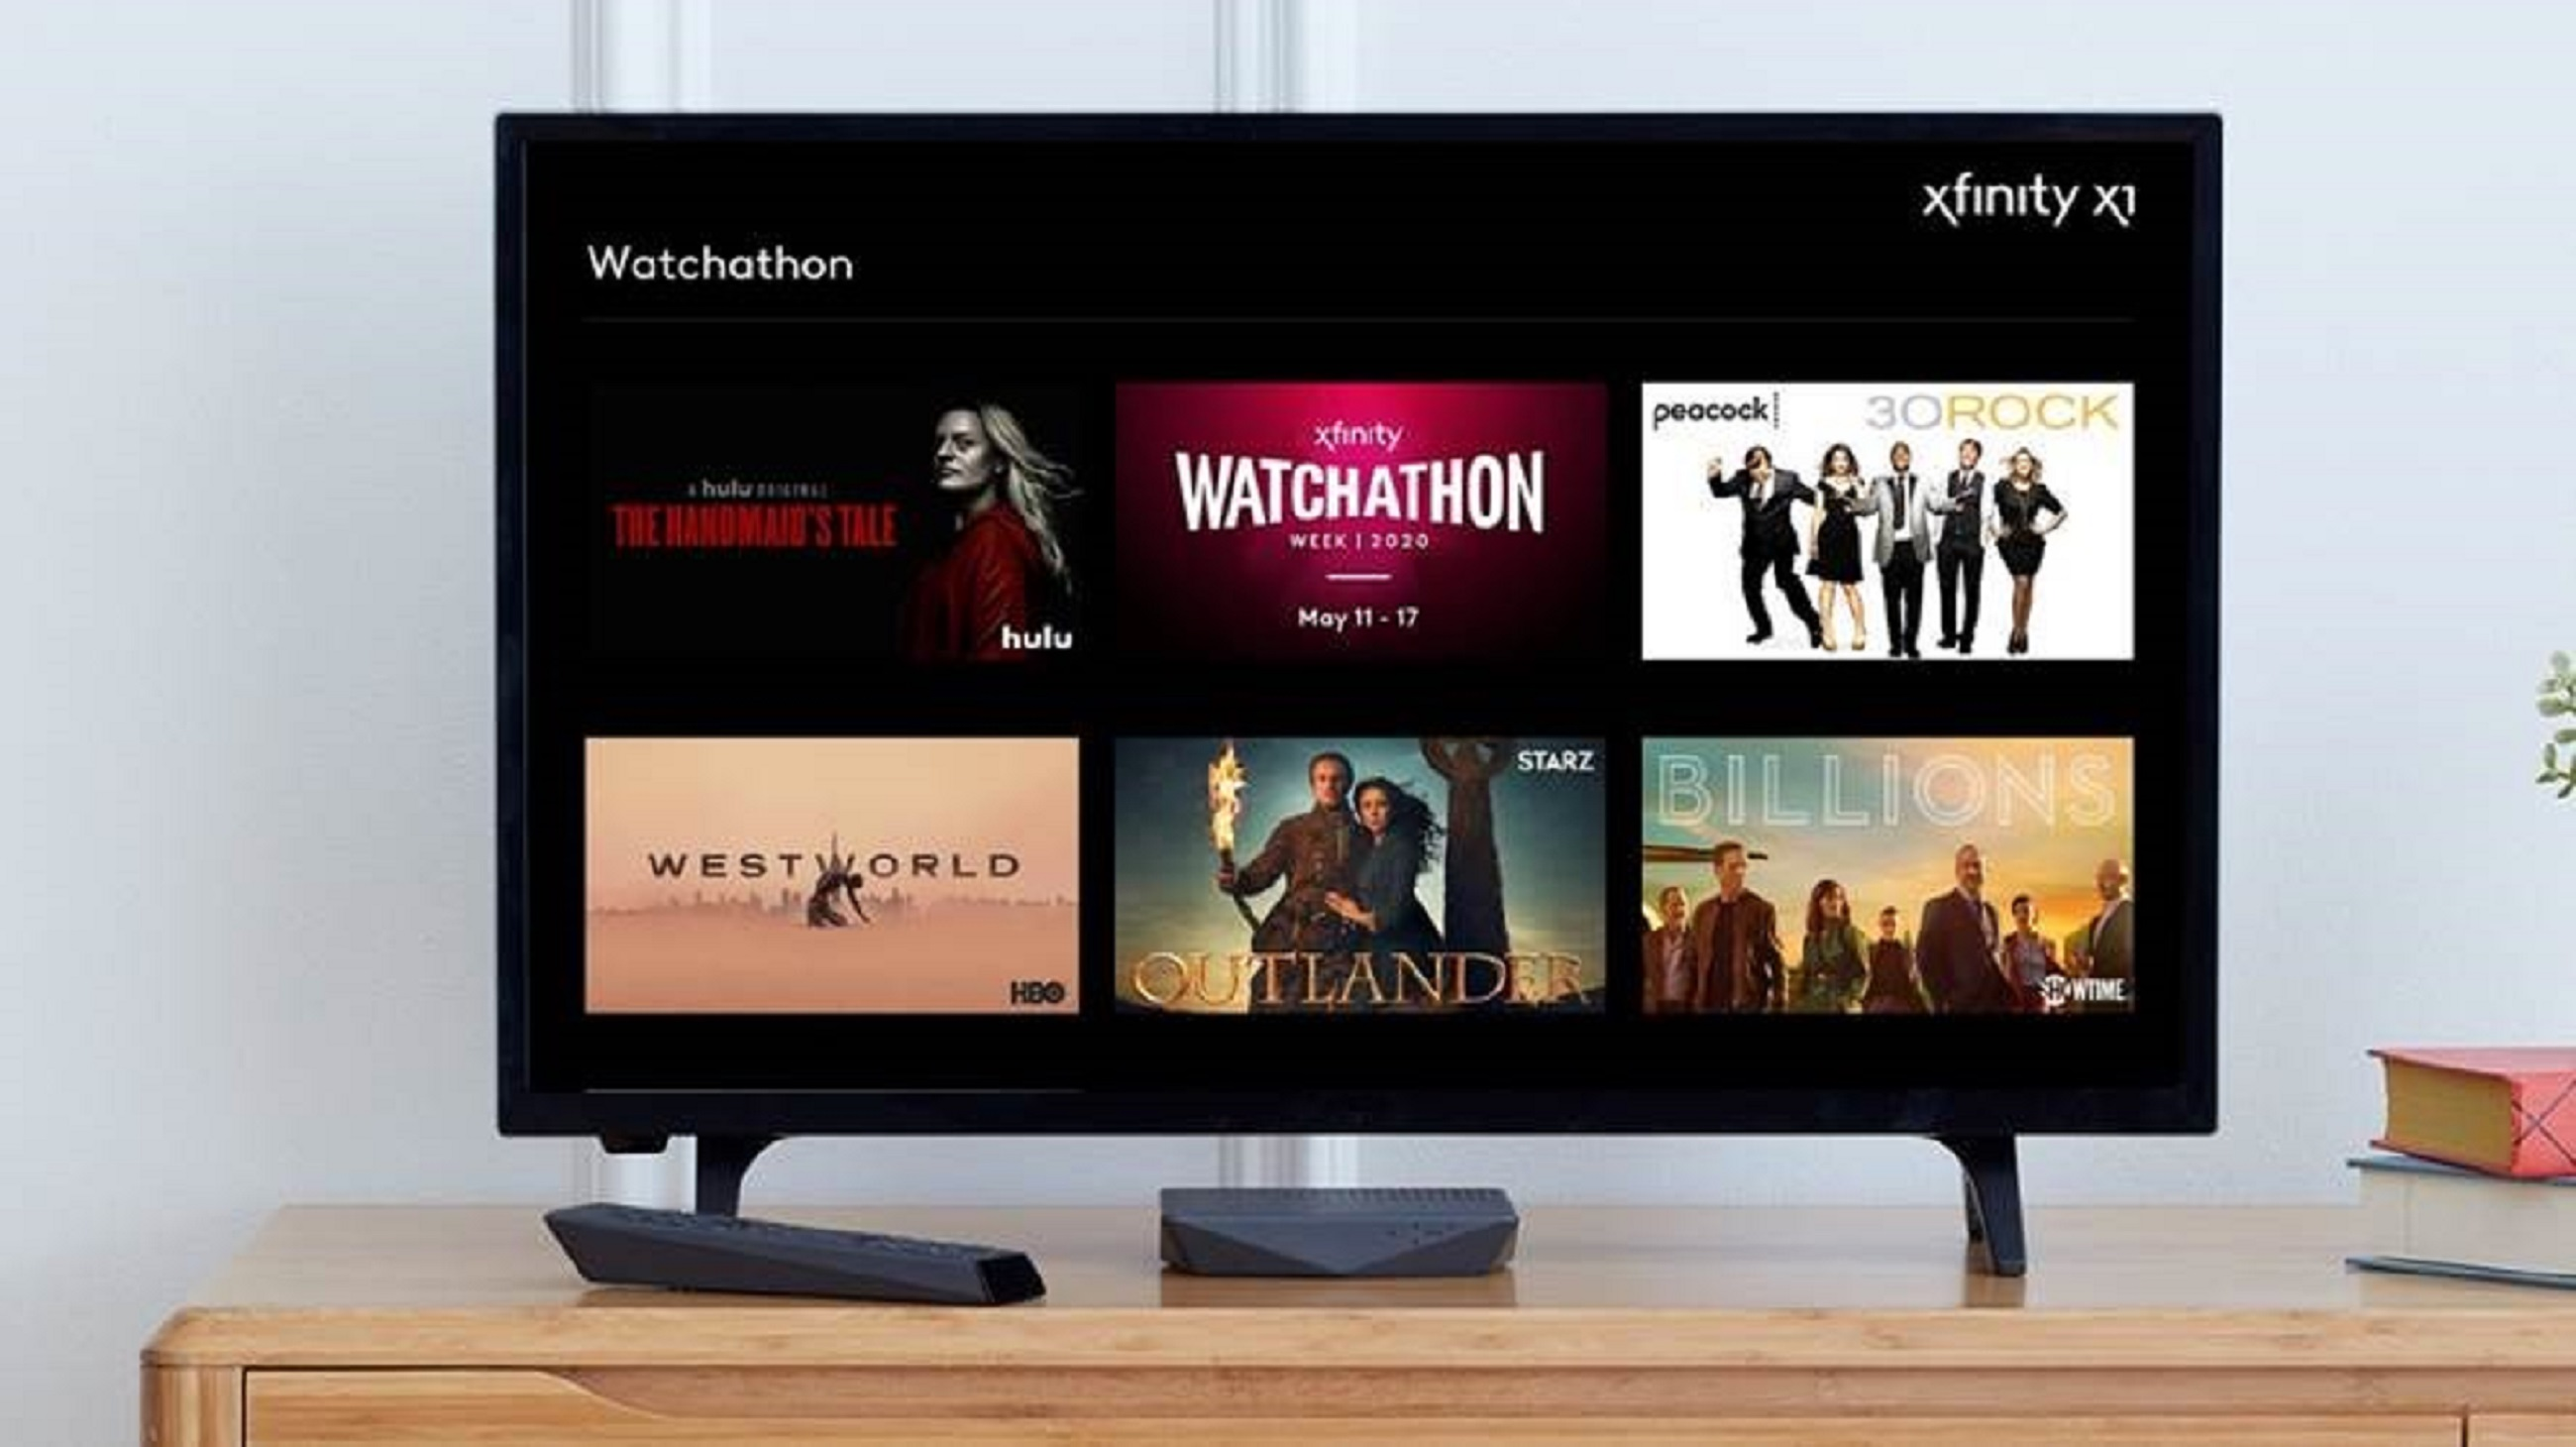 XFINITY Watchathon Week Returns May 11 17 with More Than 10,000